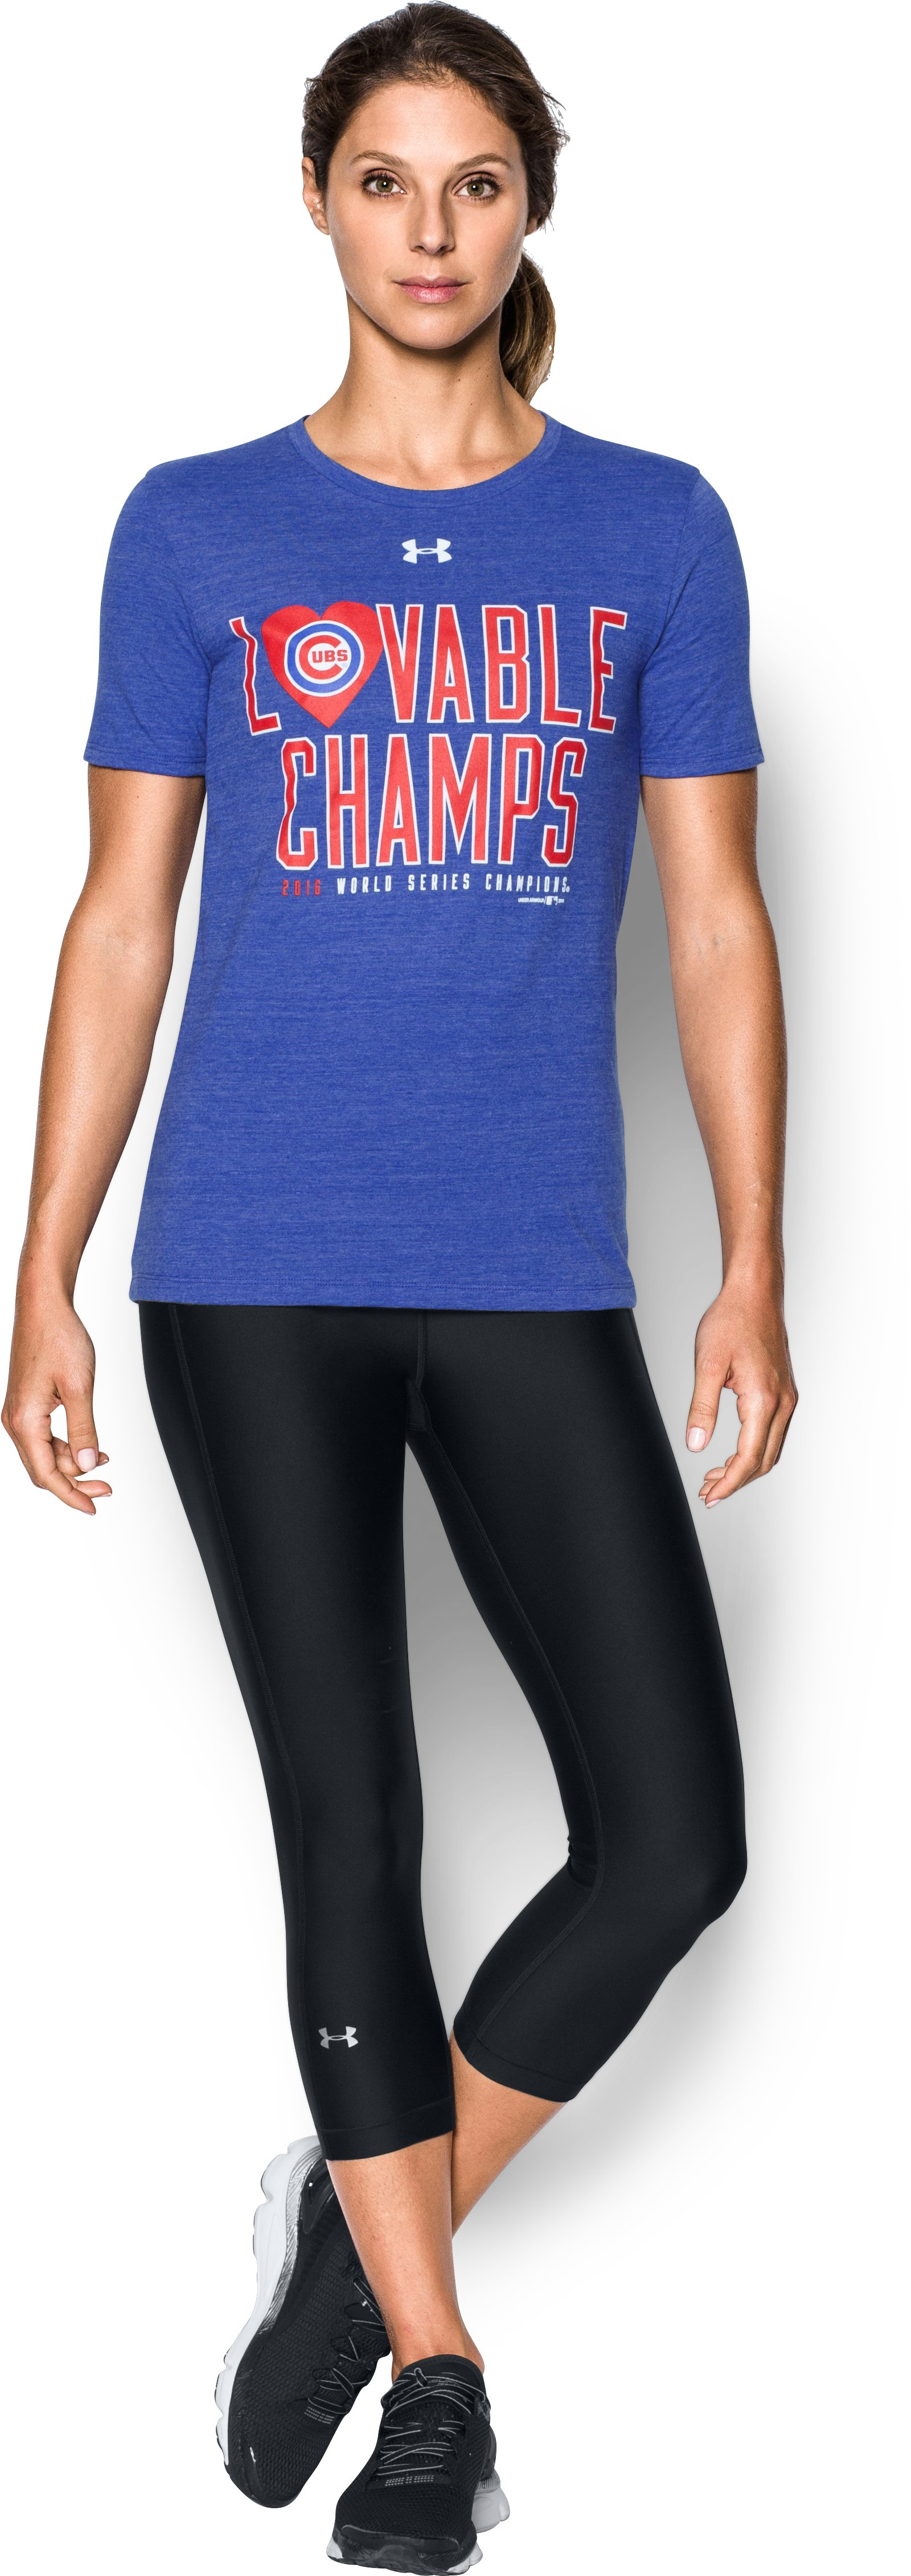 Women's Chicago Cubs Lovable Champ T-Shirt, Royal